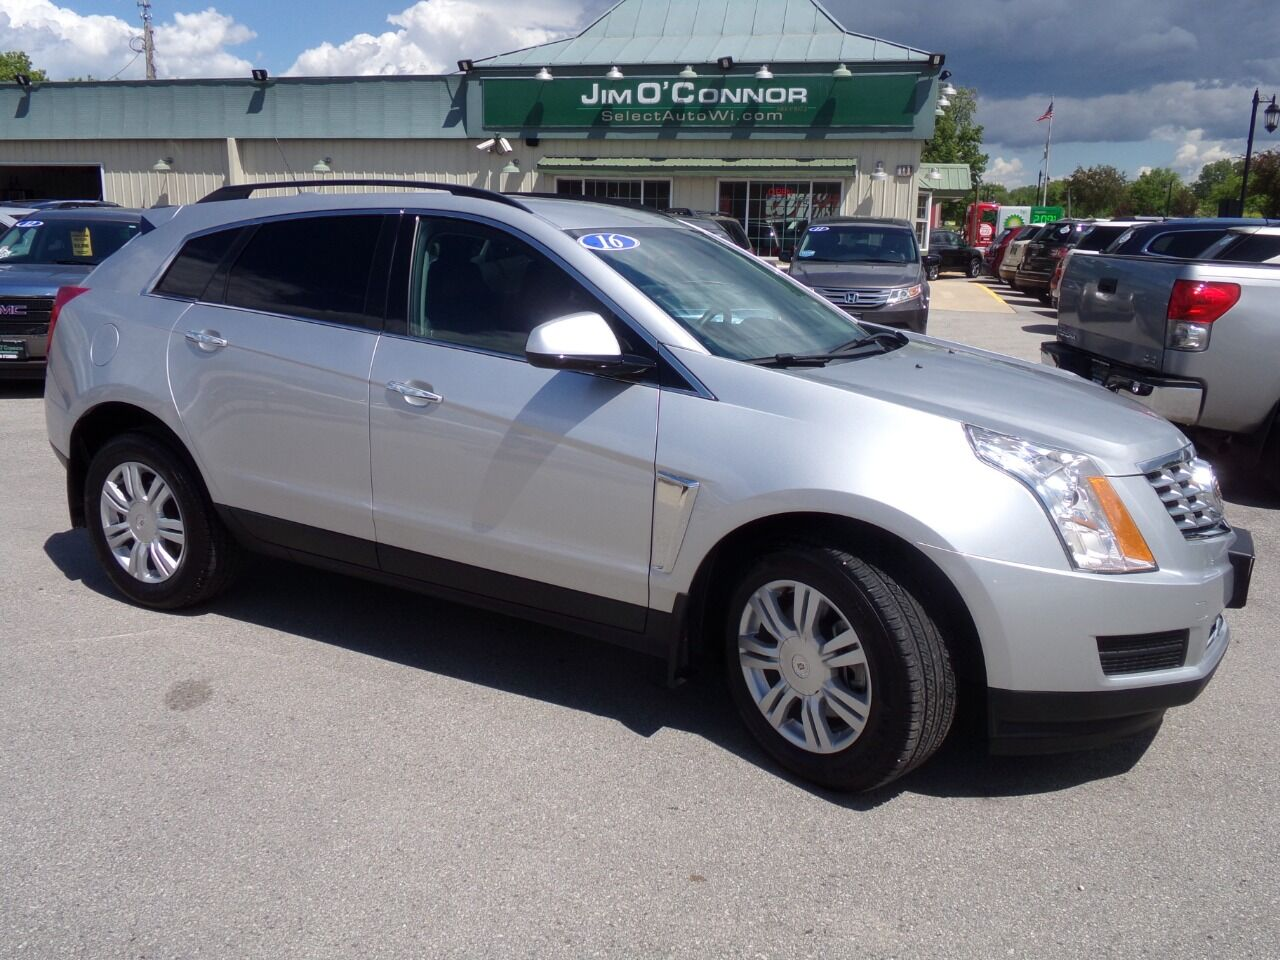 2010 Cadillac SRX FWD for Sale in Milwaukee, WI - CarGurus